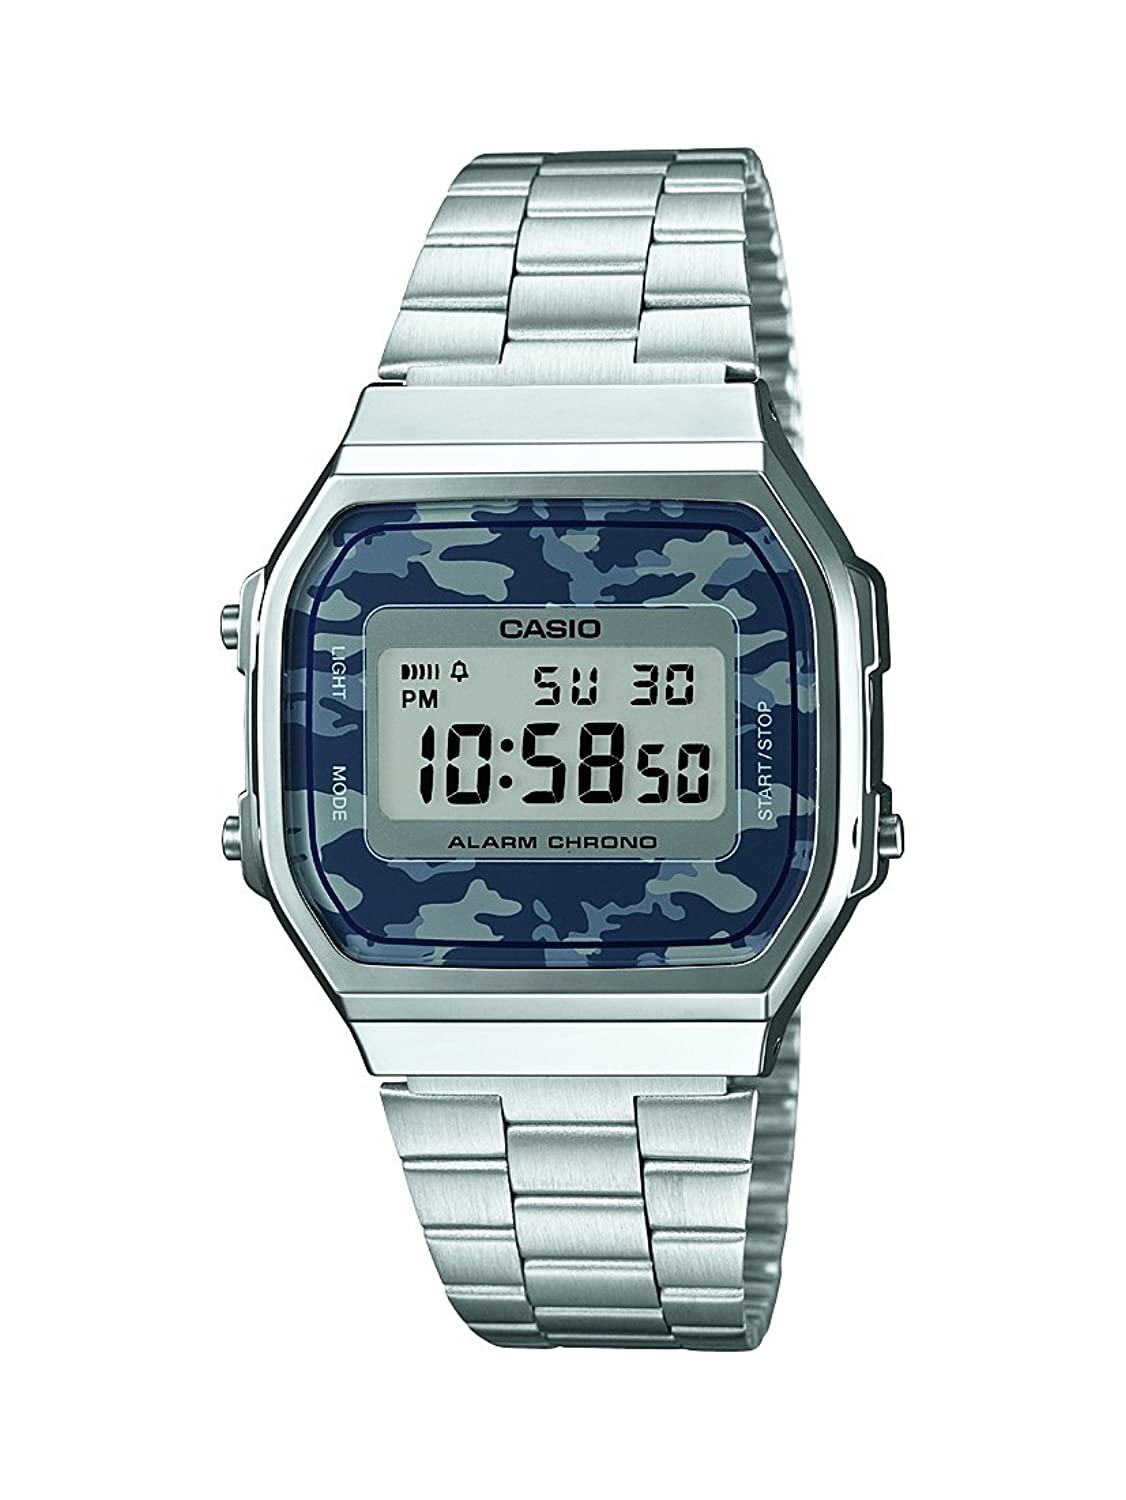 Casio Collection Reloj Digital Unisex con Correa de Acero Inoxidable – AWEC